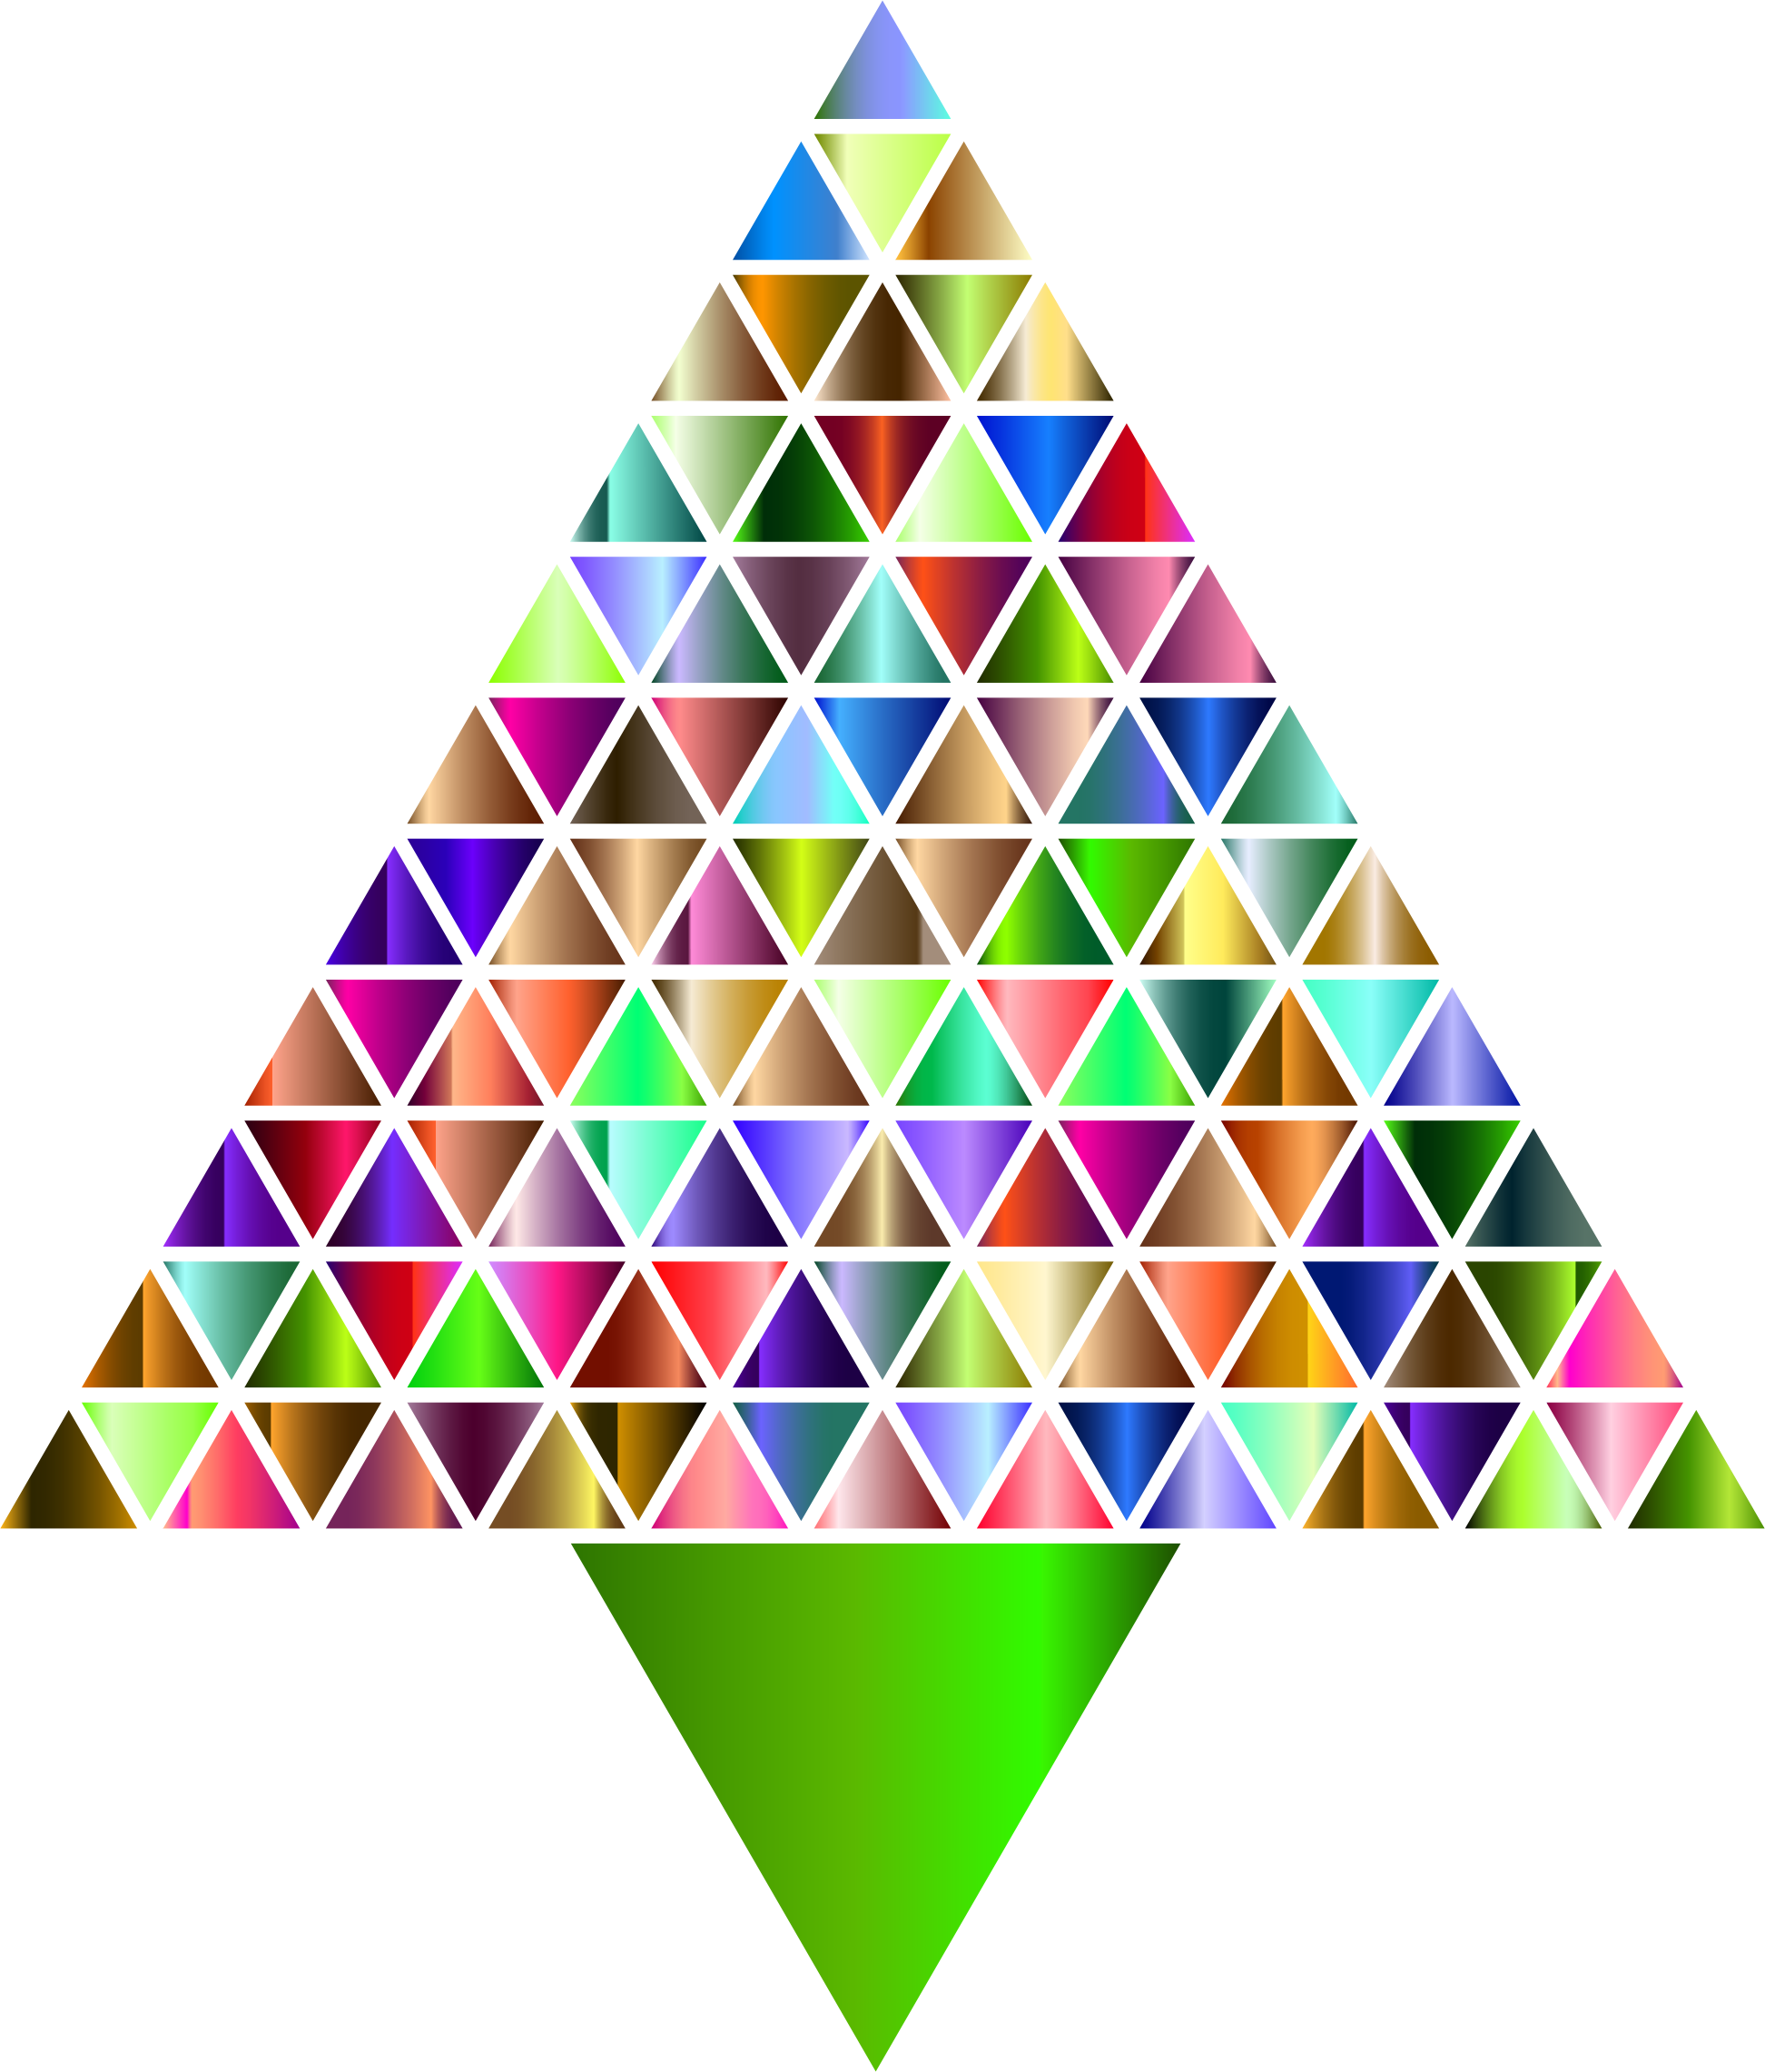 Prismatic Abstract Triangular Christmas Tree 7 by GDJ